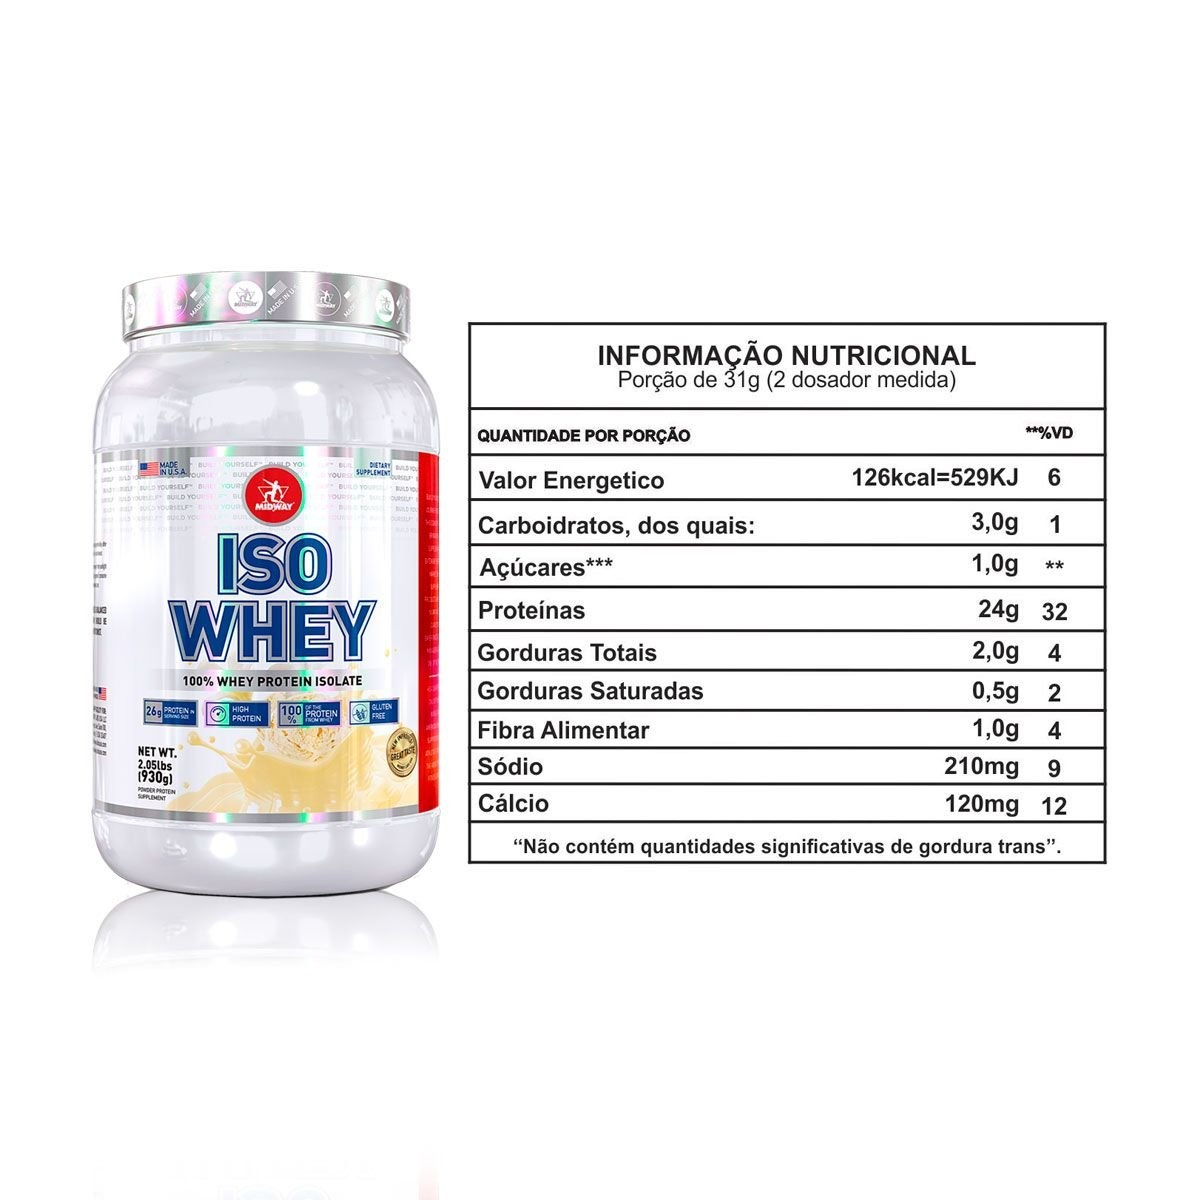 ISO WHEY (930G) - MIDWAY USA